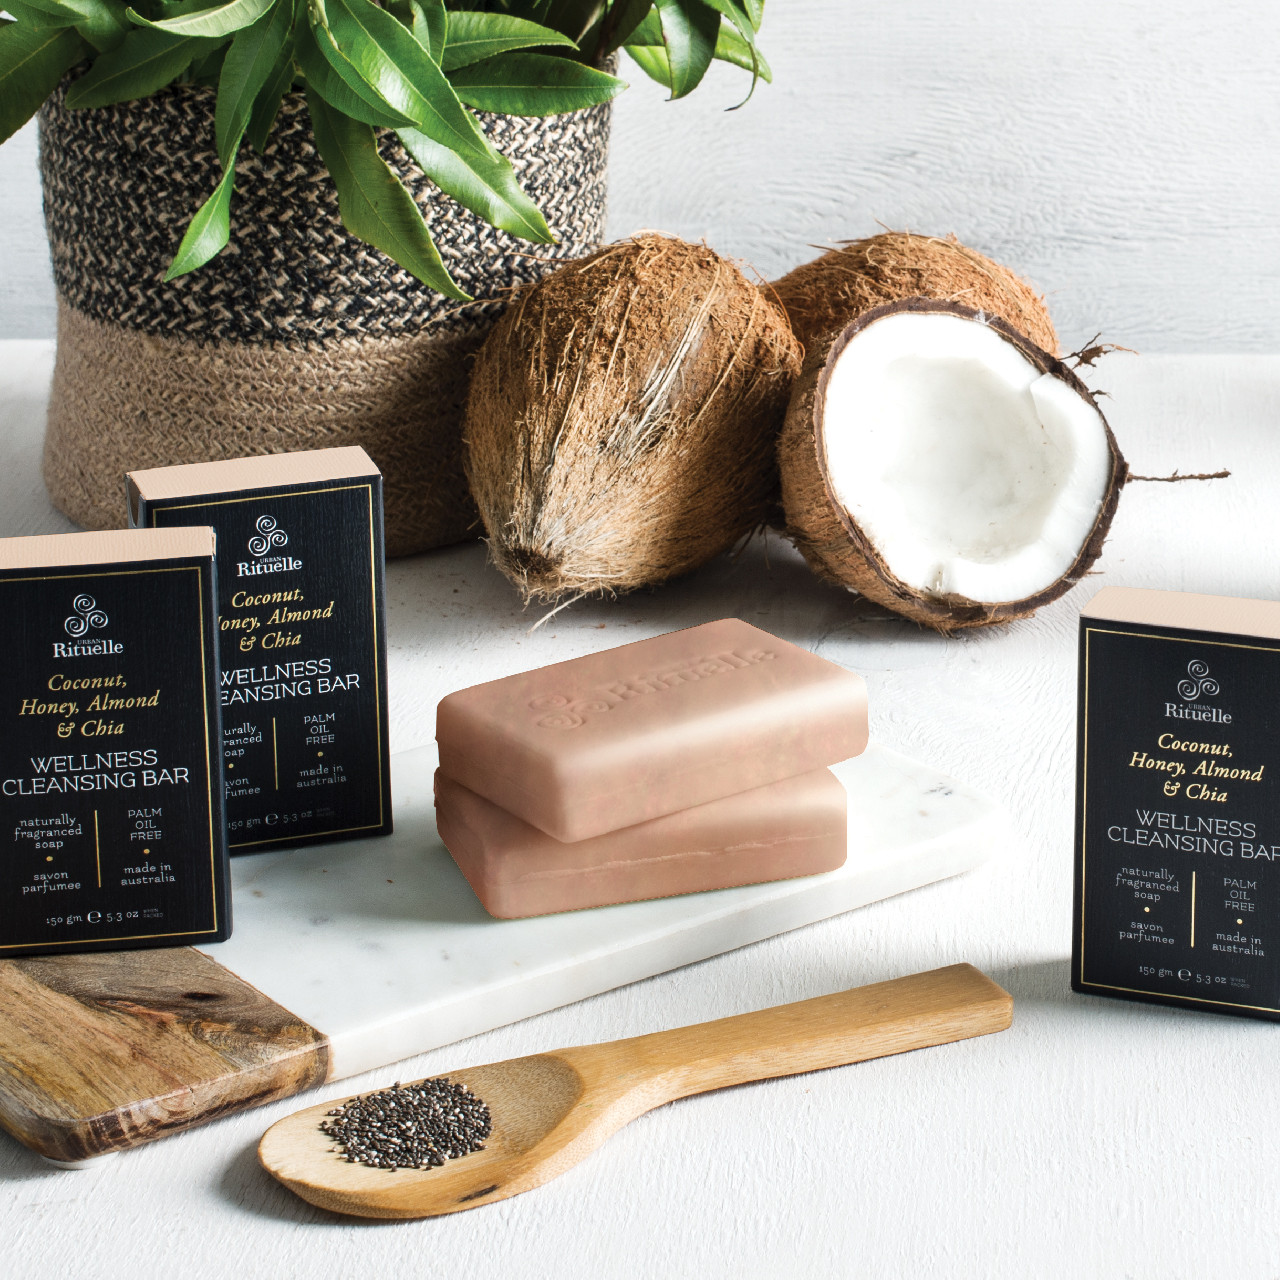 Harvest - Coconut - Wellness Cleansing Bar - Urban Rituelle